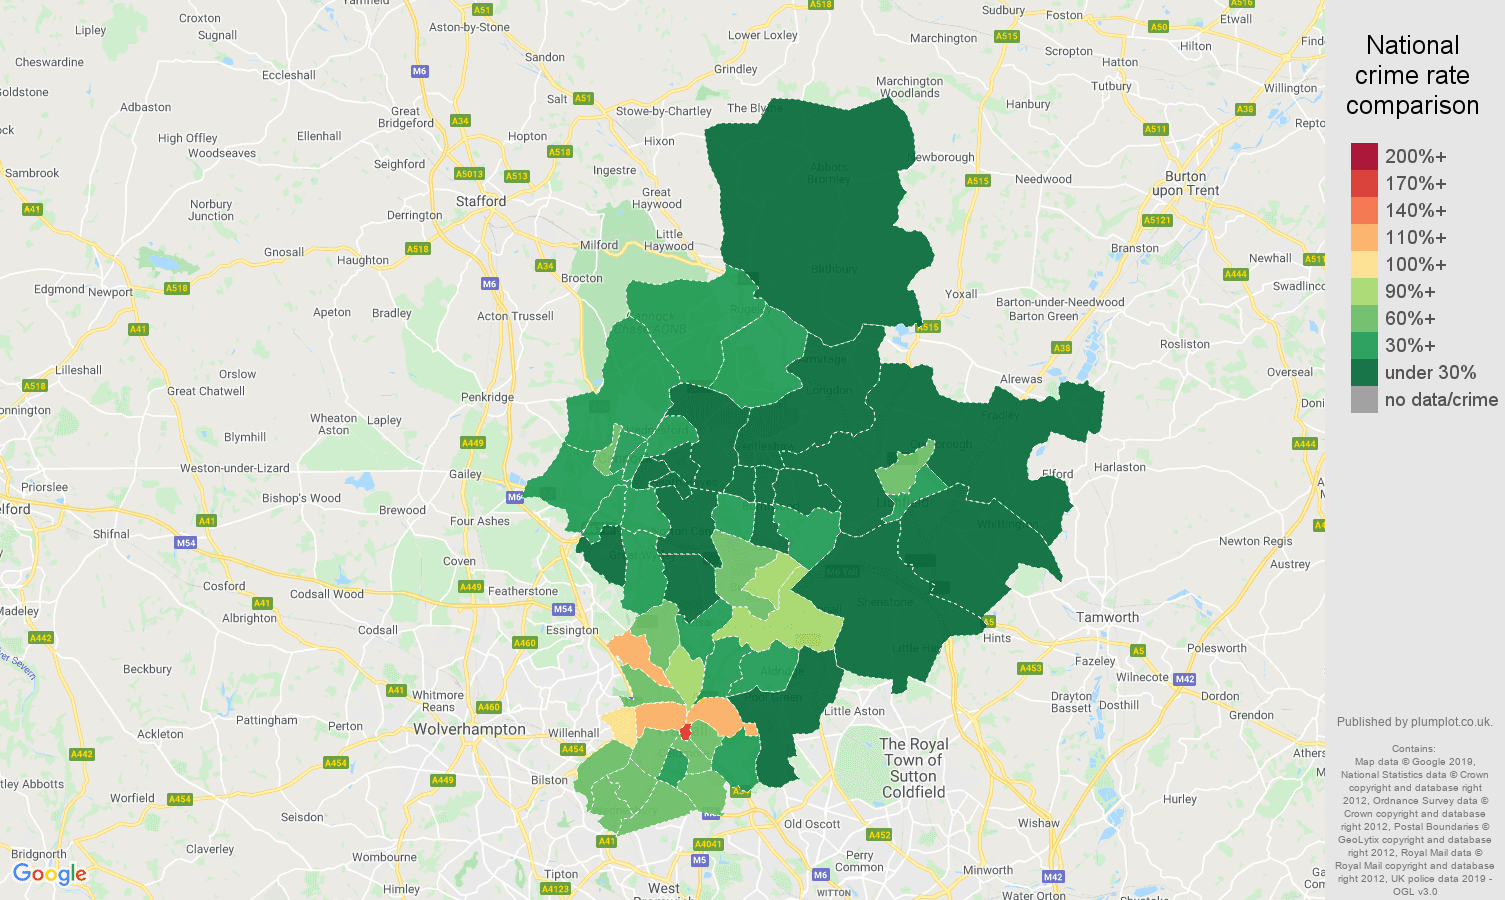 Walsall public order crime rate comparison map